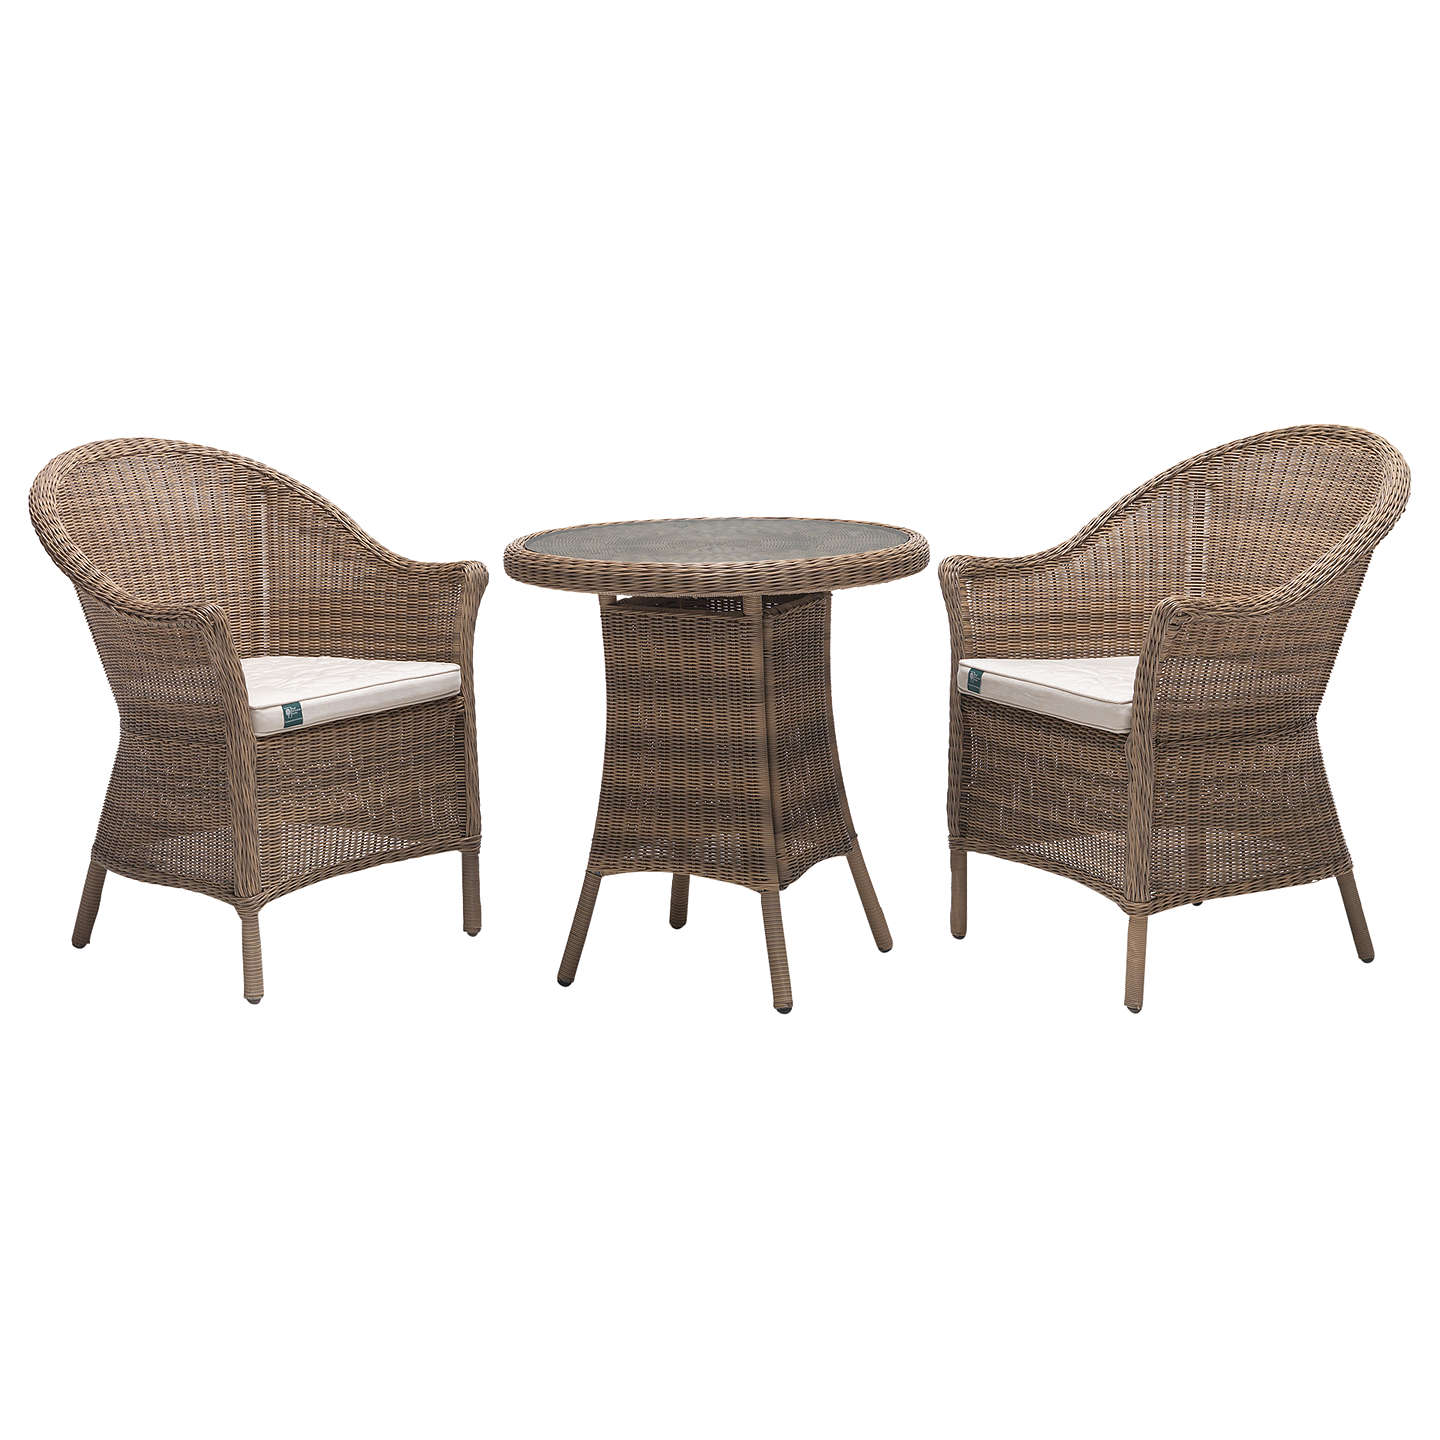 Garden Table And Chairs Set John Lewis: KETTLER RHS Harlow Carr Garden Bistro Table And Chairs Set